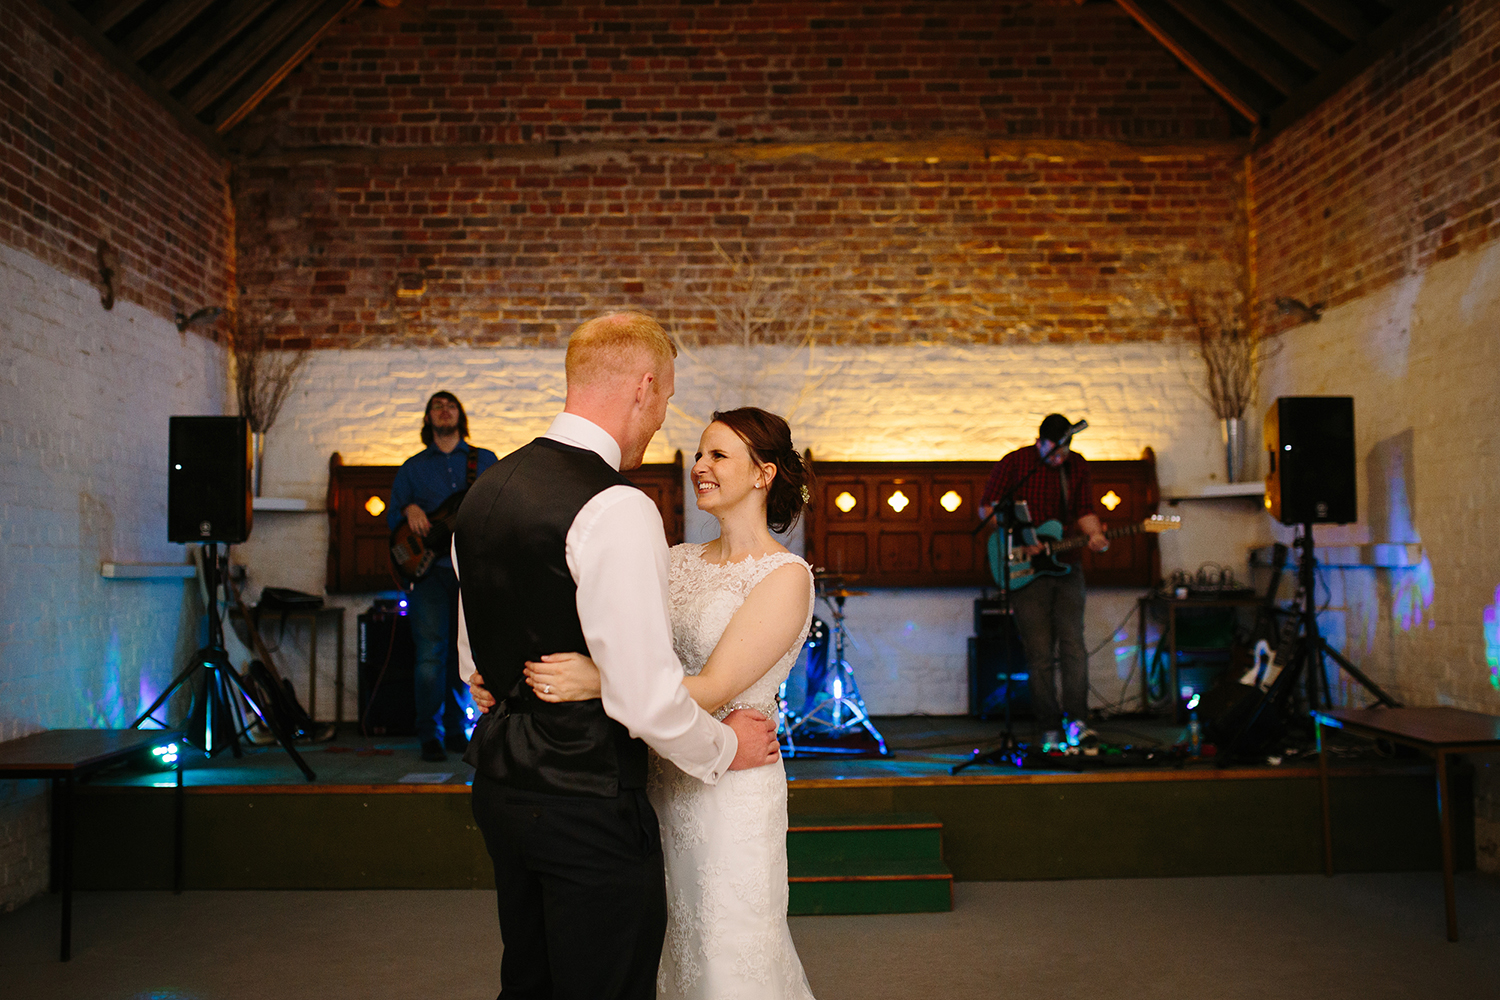 Wedding Photographer Worcester Springhill Barn 090.jpg